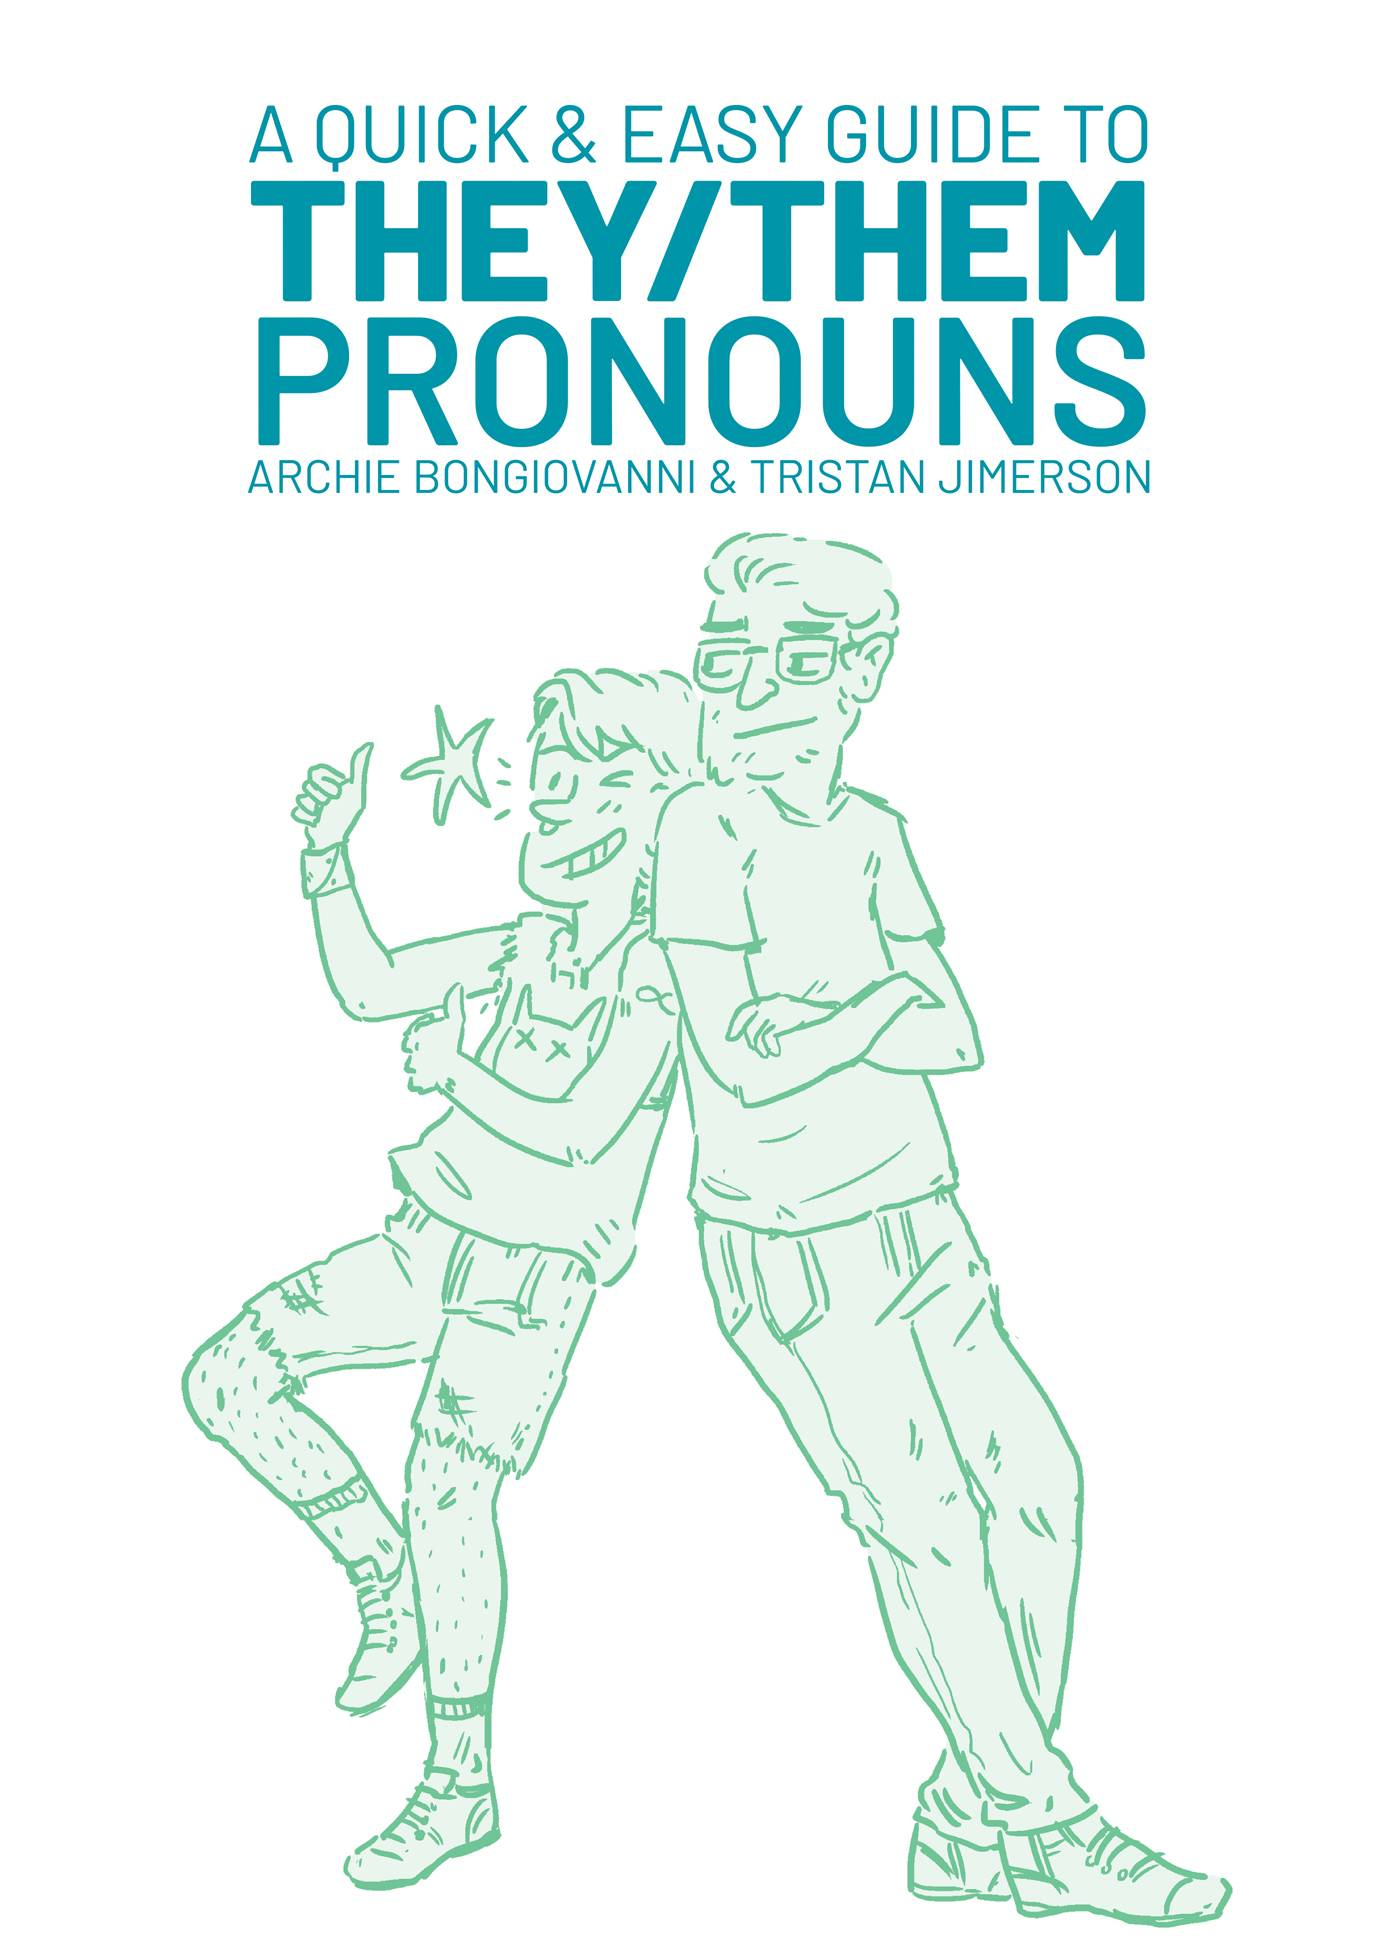 QUICK & EASY GUIDE TO THEY THEM PRONOUNS GN